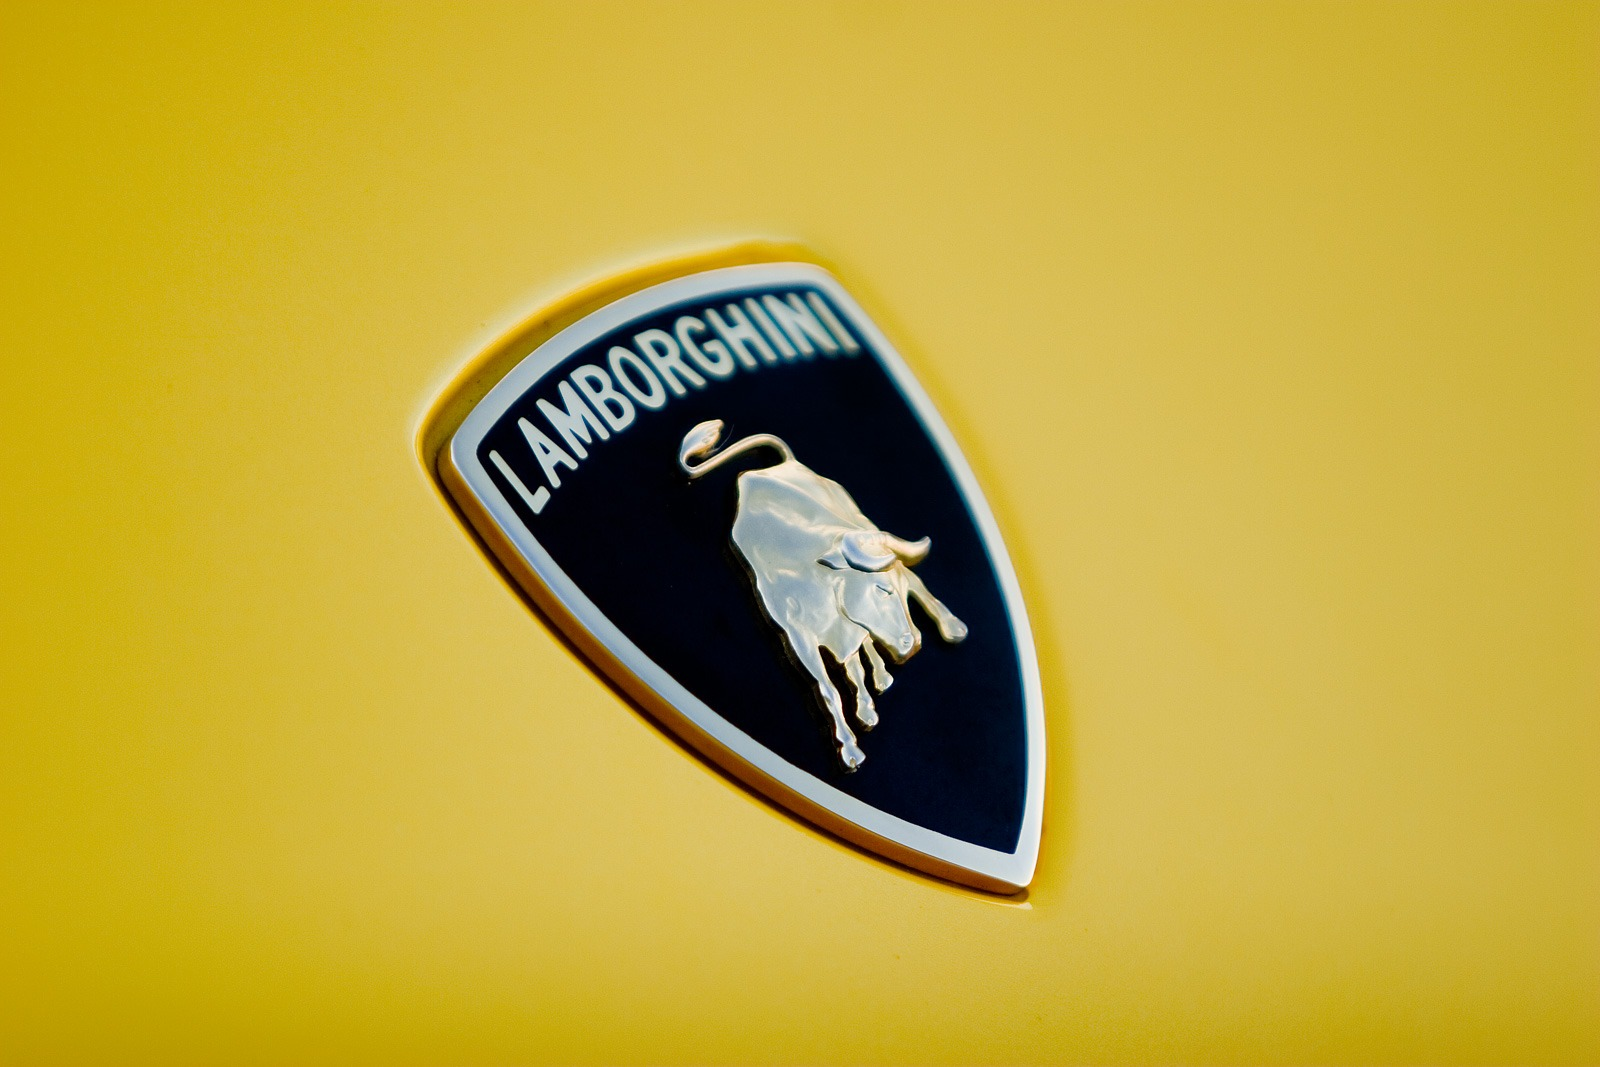 ferrari hypercar list html with Top 10 Most Popular Supercar Brands In The Us on Top 10 Fastest Cars In World moreover Best Images Of New Model 2018 Volvo Xc90 moreover 2014 Expression Motorsport Mercedes as well Timeless Beauty The Cars Of The Fullerton Concours D Elegance In Singapore furthermore 1997 Dodge Stealth.